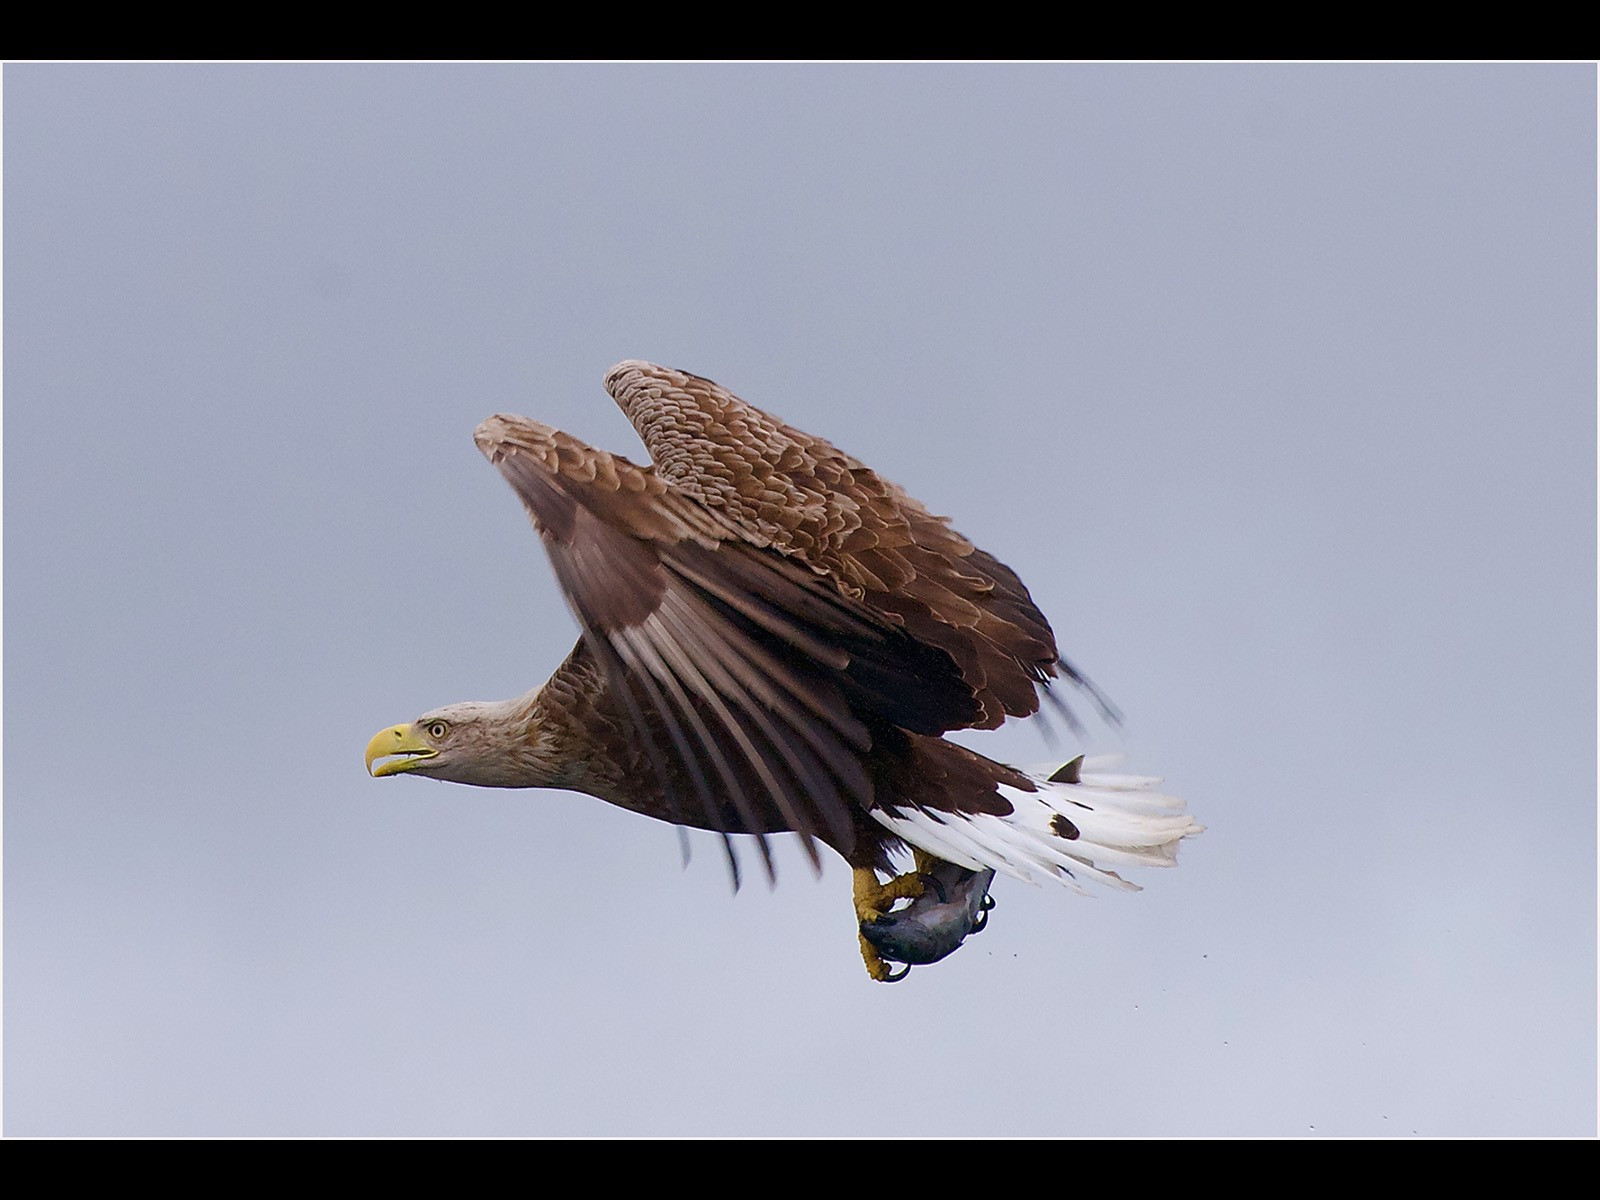 2. White Tailed Eagle  with fish